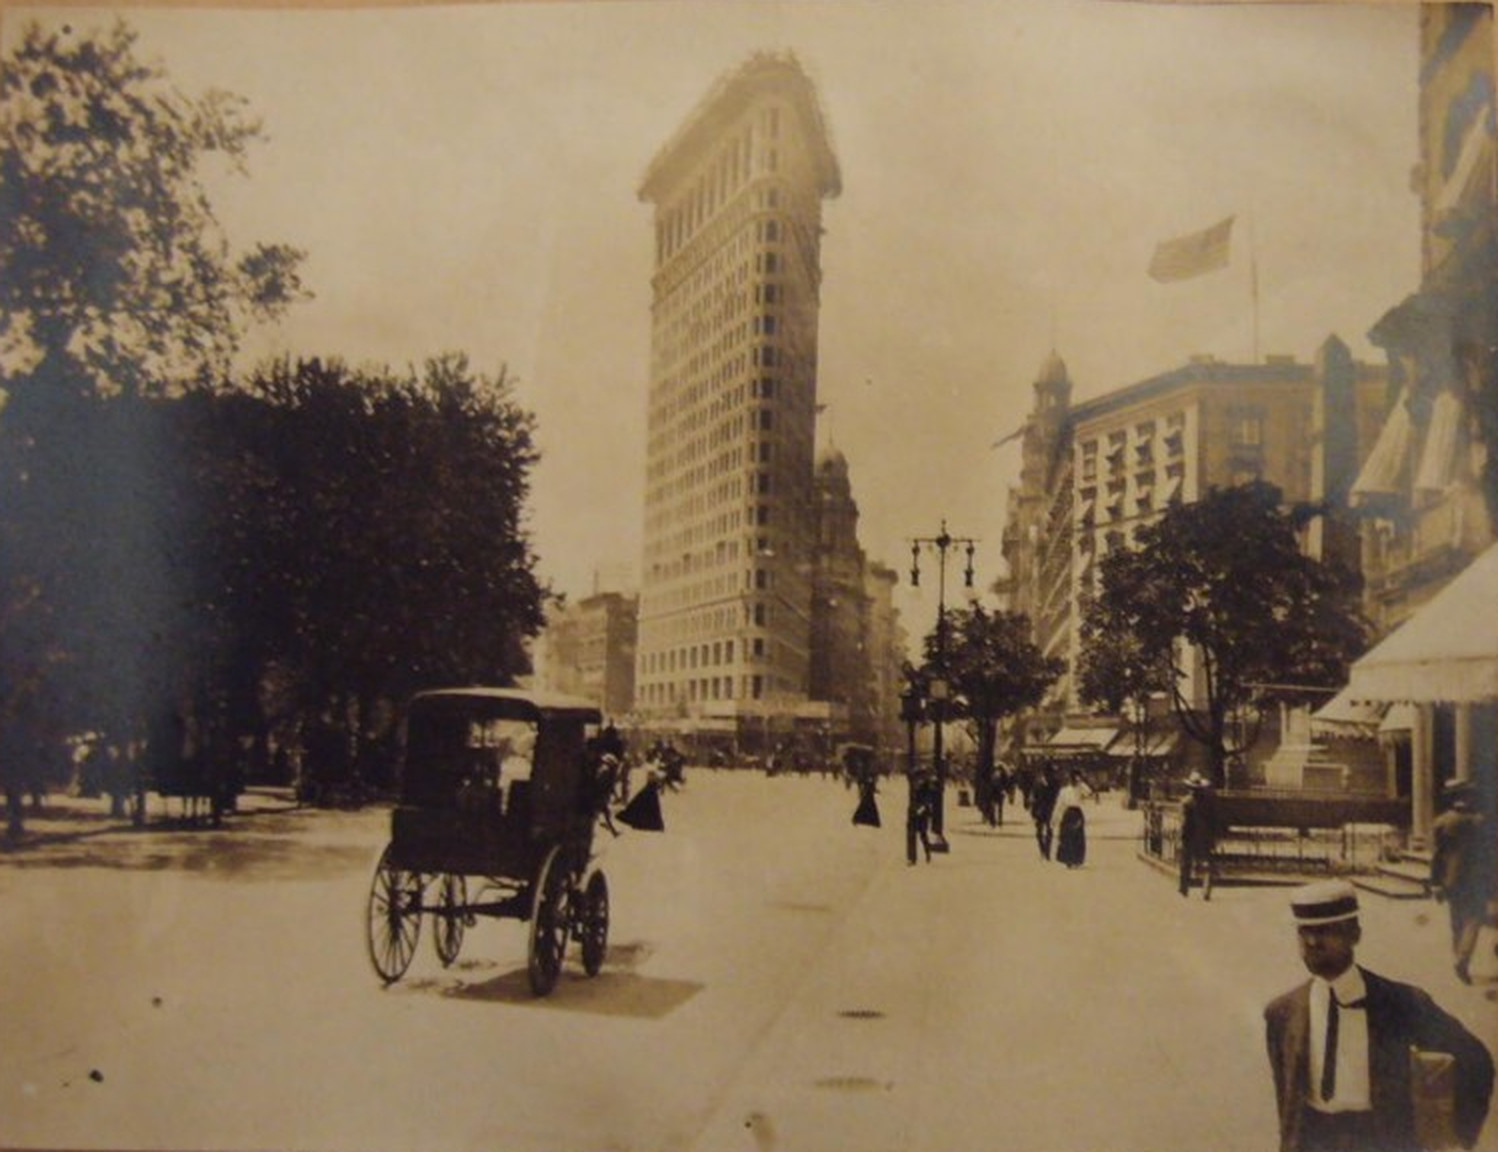 Old New York In Photos #89 – The Flatiron Building Nears Completion 1902